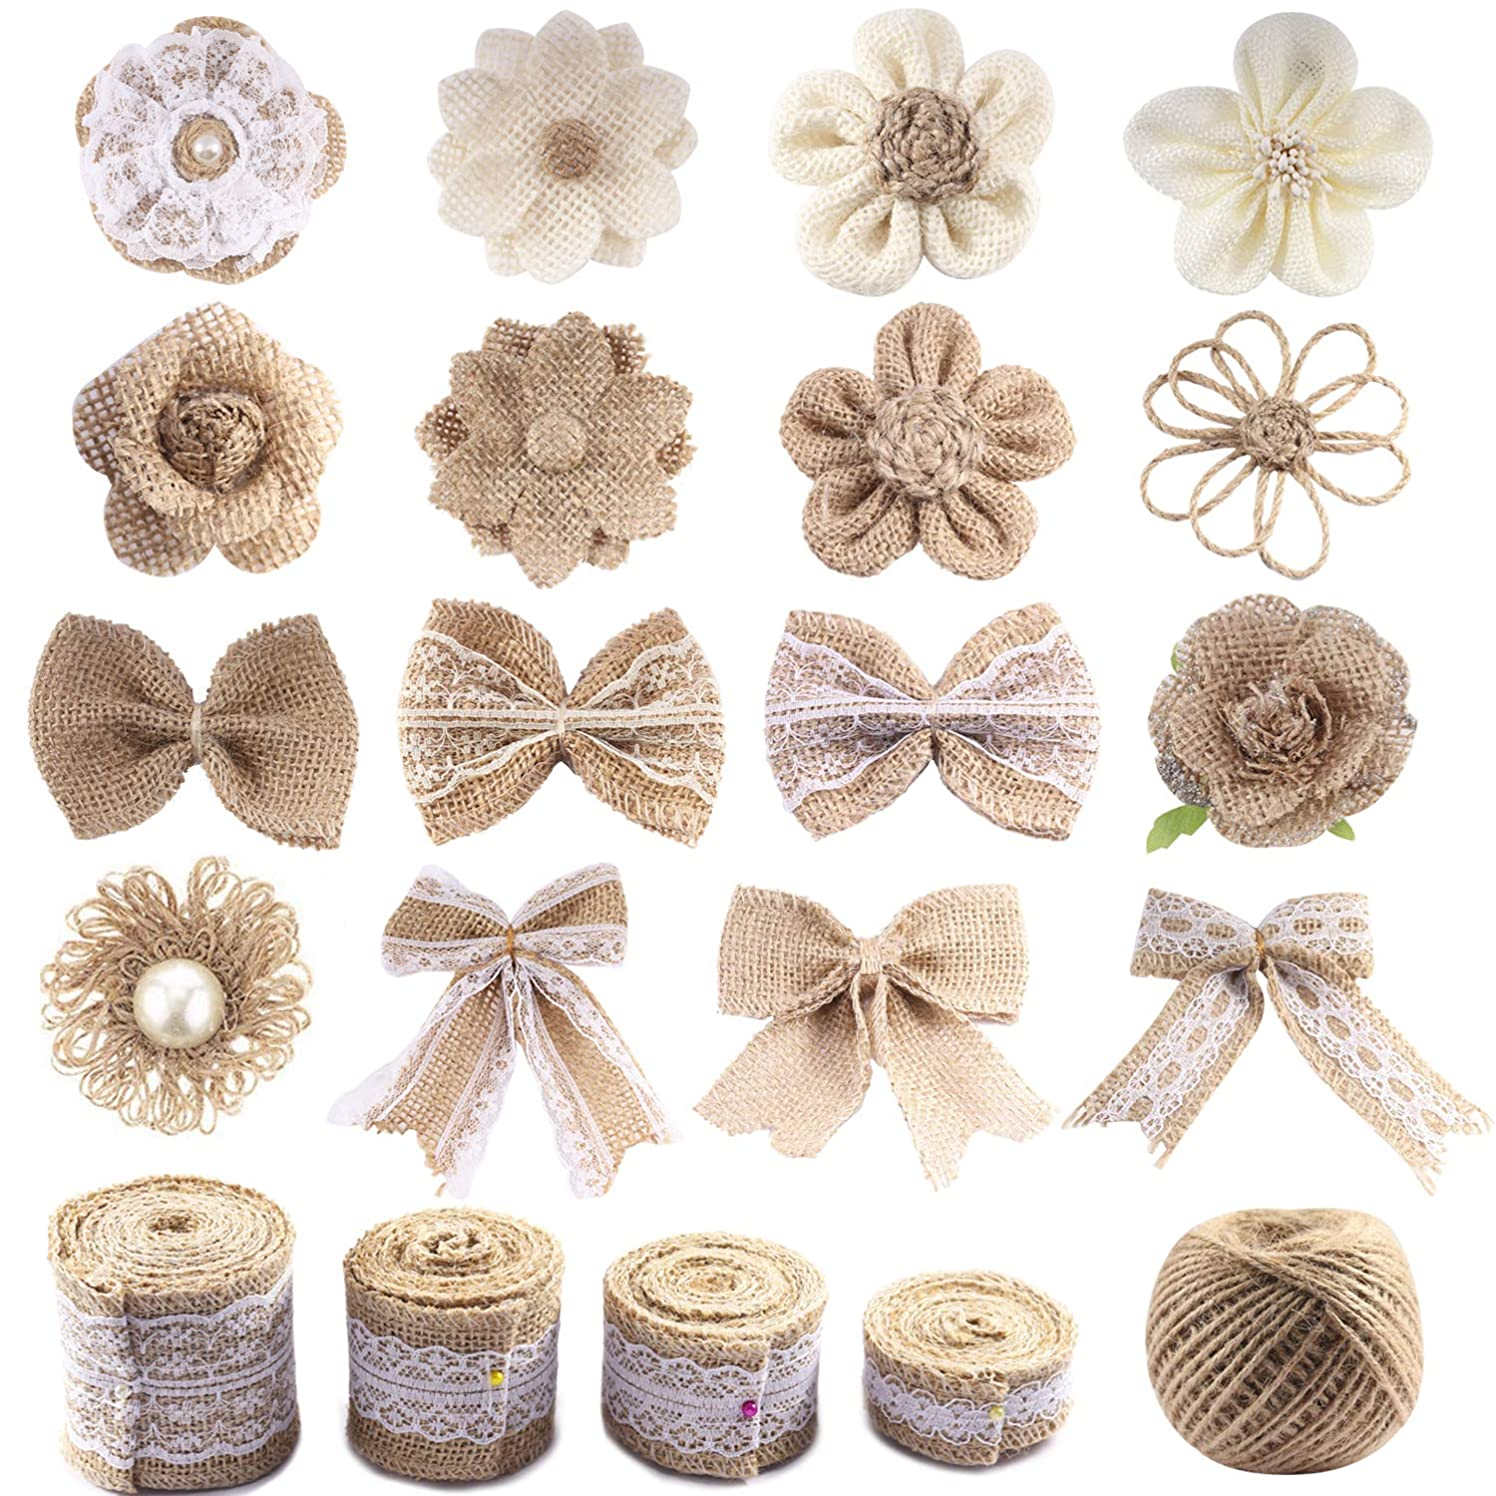 Forise Natural Burlap Ribbon Flowers Set,Include 16pcs Handmade Rustic Burlap Flowers,Different Sizes of Lace Burlap Ribbon Roll and Twine Ribbon for Wedding Home Craft Embellishment,21pcs